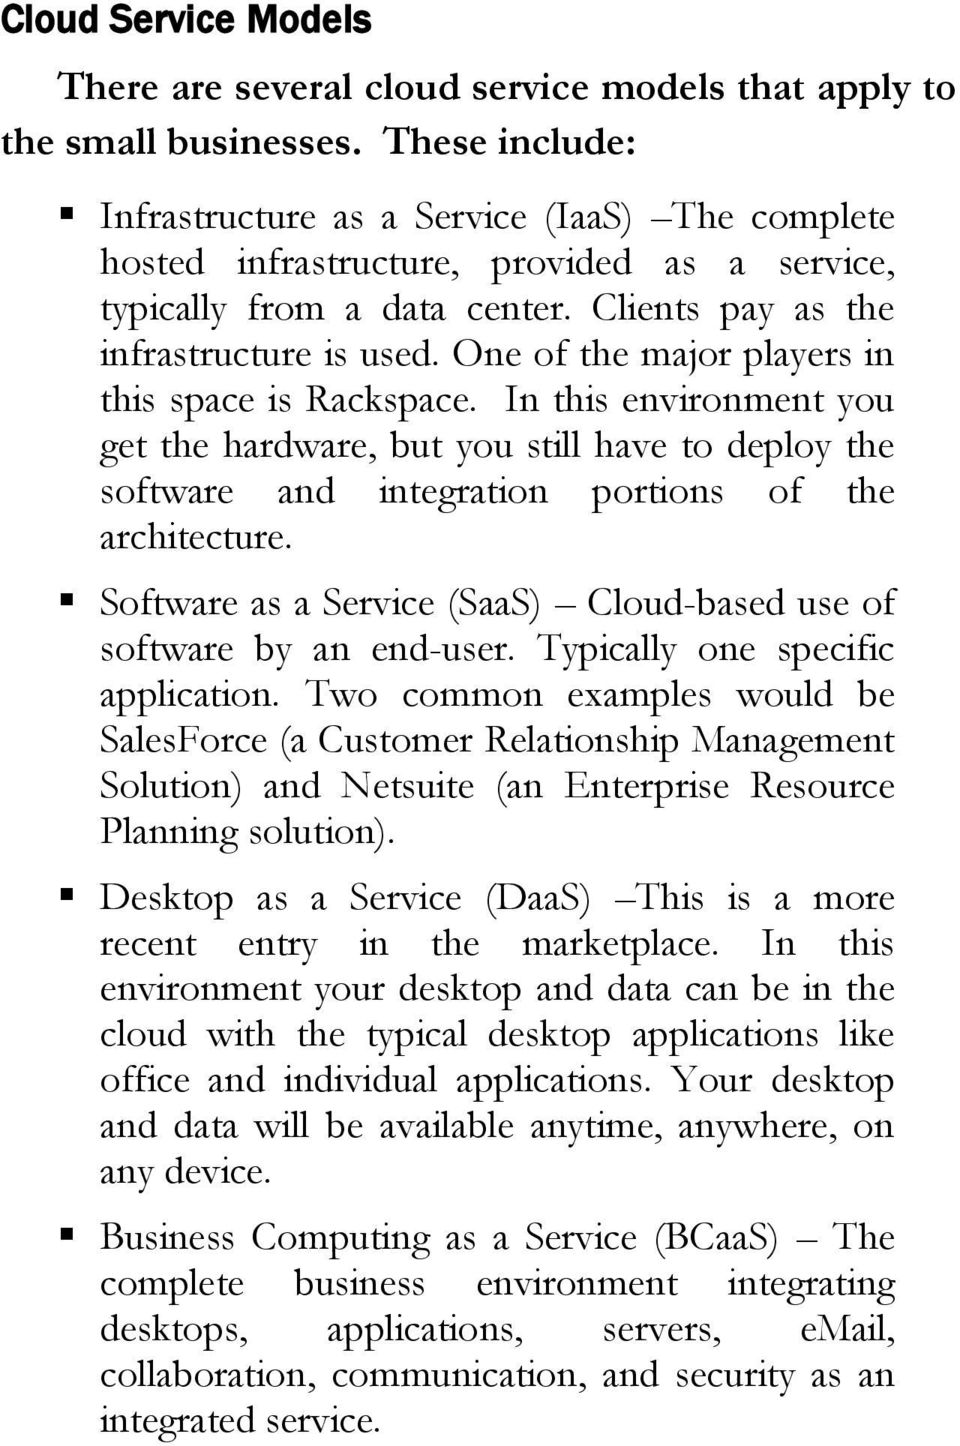 One of the major players in this space is Rackspace. In this environment you get the hardware, but you still have to deploy the software and integration portions of the architecture.